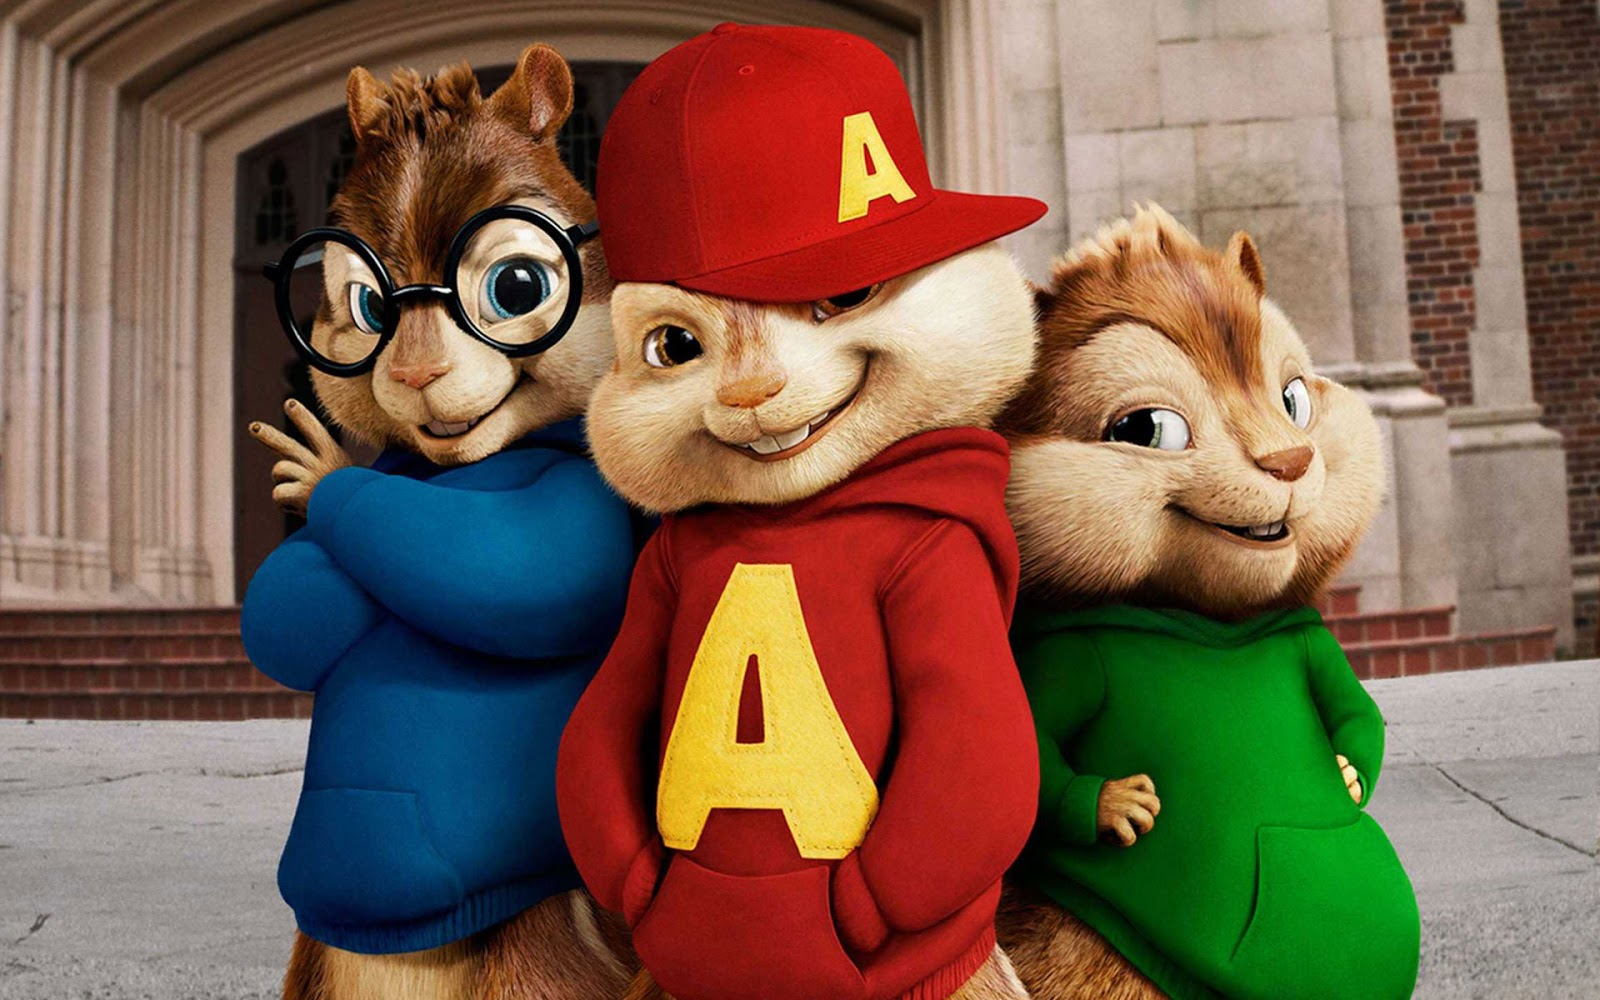 alvin and the chipmunks 4 movie : teaser trailer